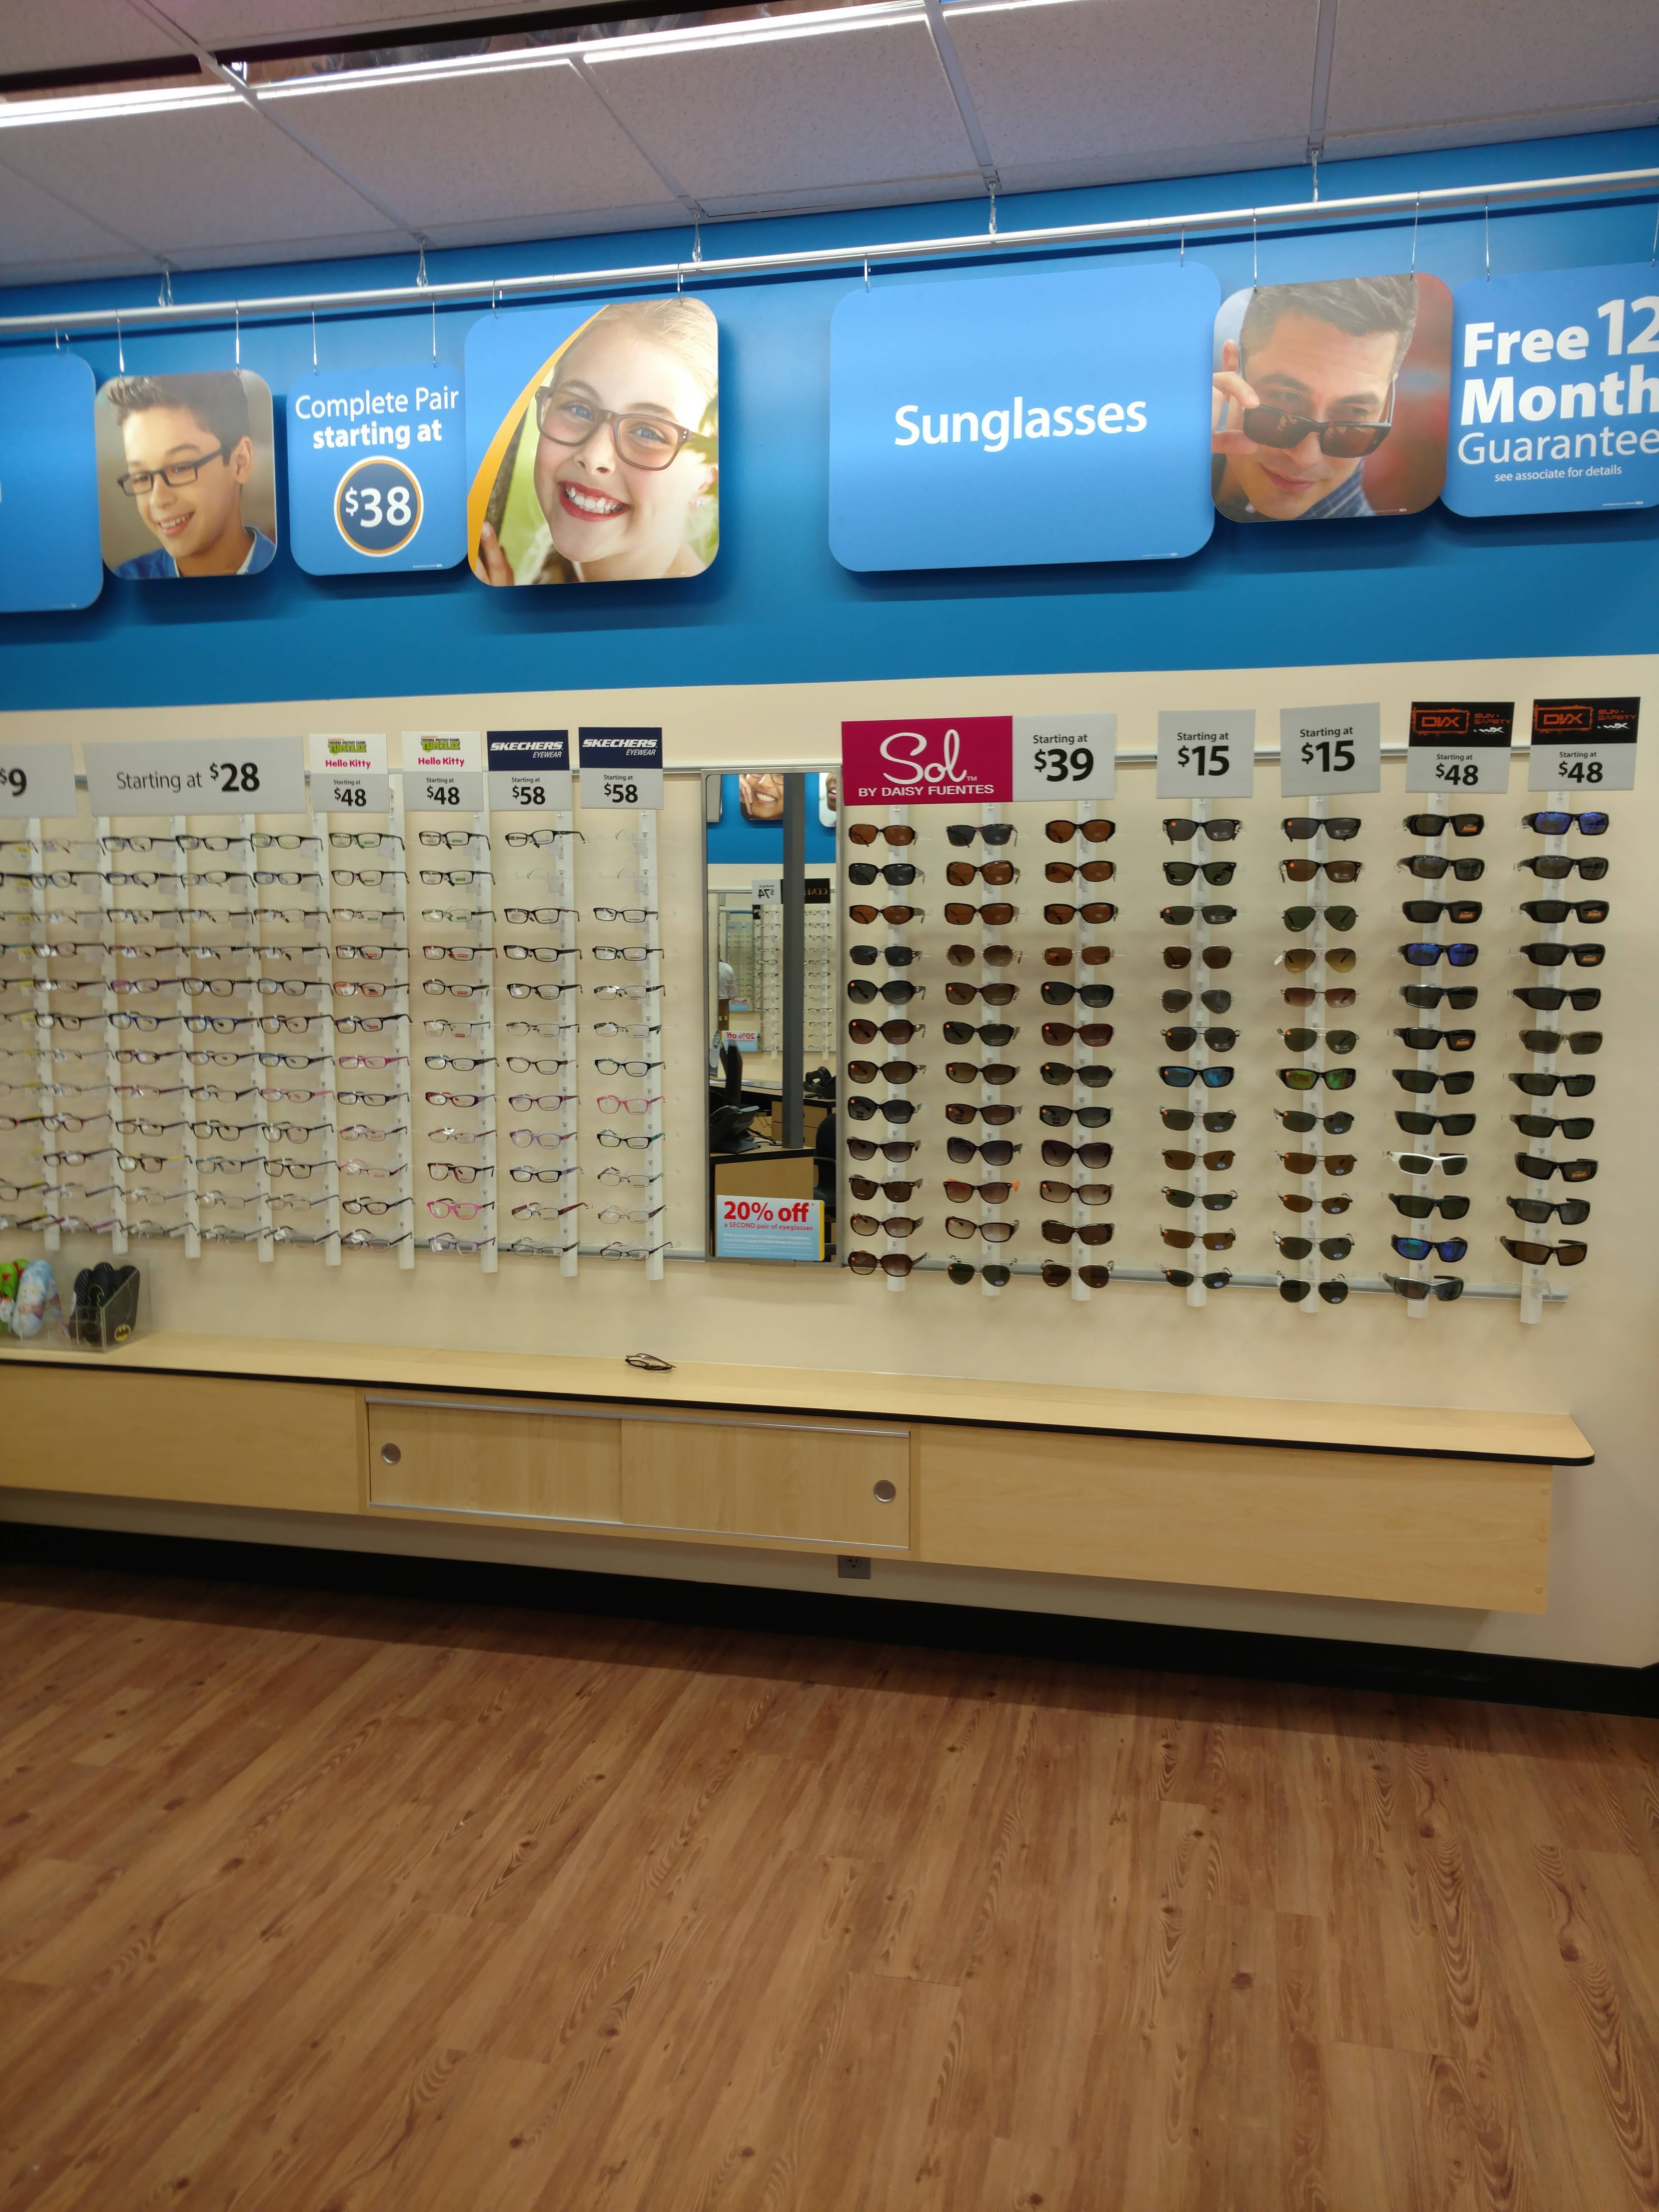 Risk-Optometric-Associates-vision-correction-in-Fayetteville-at-eye-doctors-office-on-Gillespie